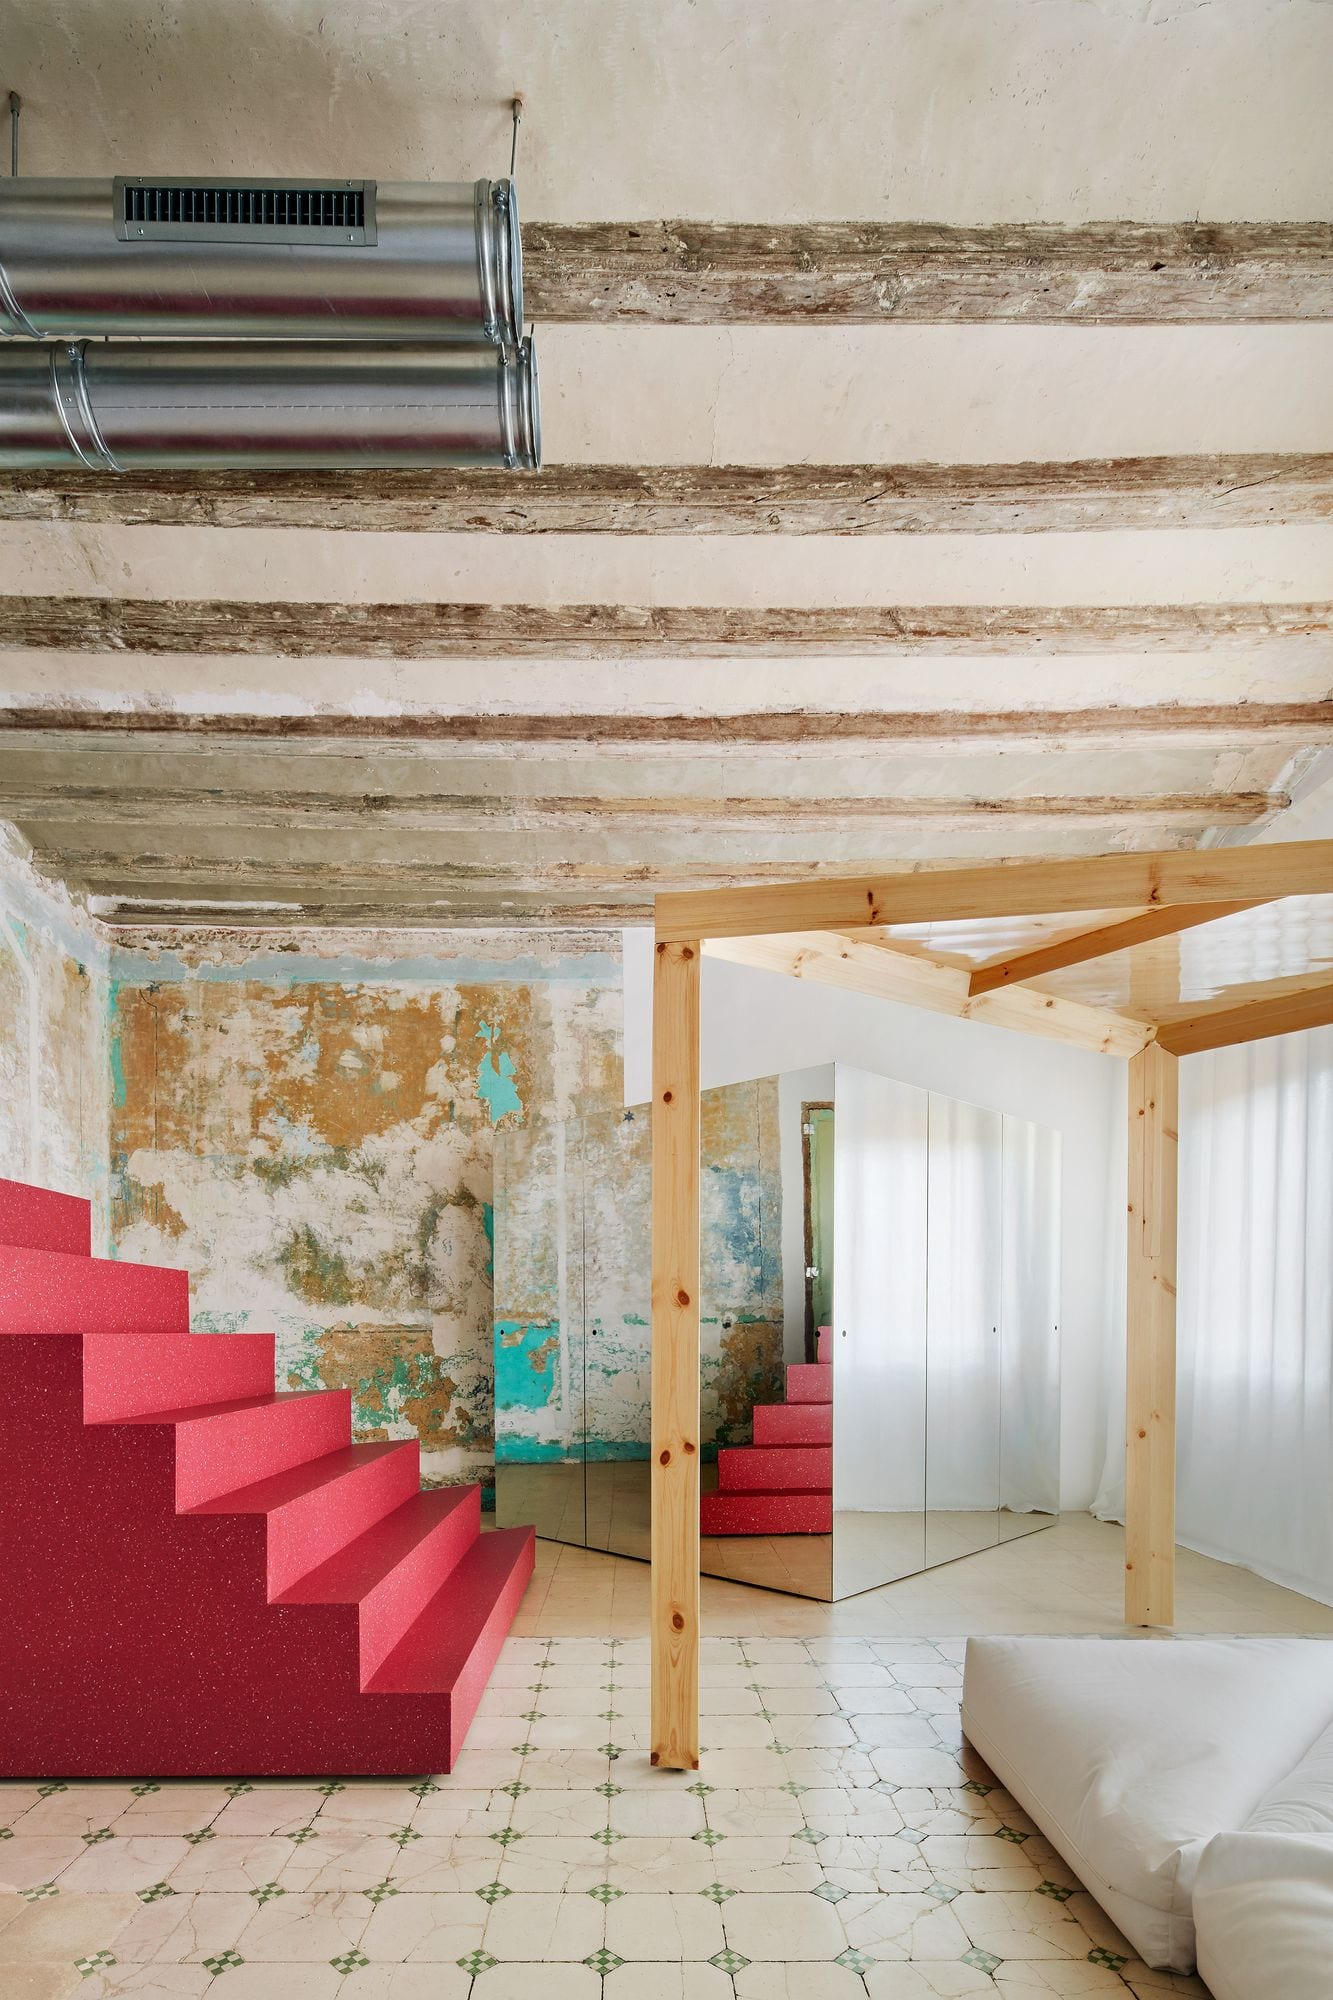 Transforming Room For Child Inside Barcelona Apartment By P M A A Yellowtrace 04